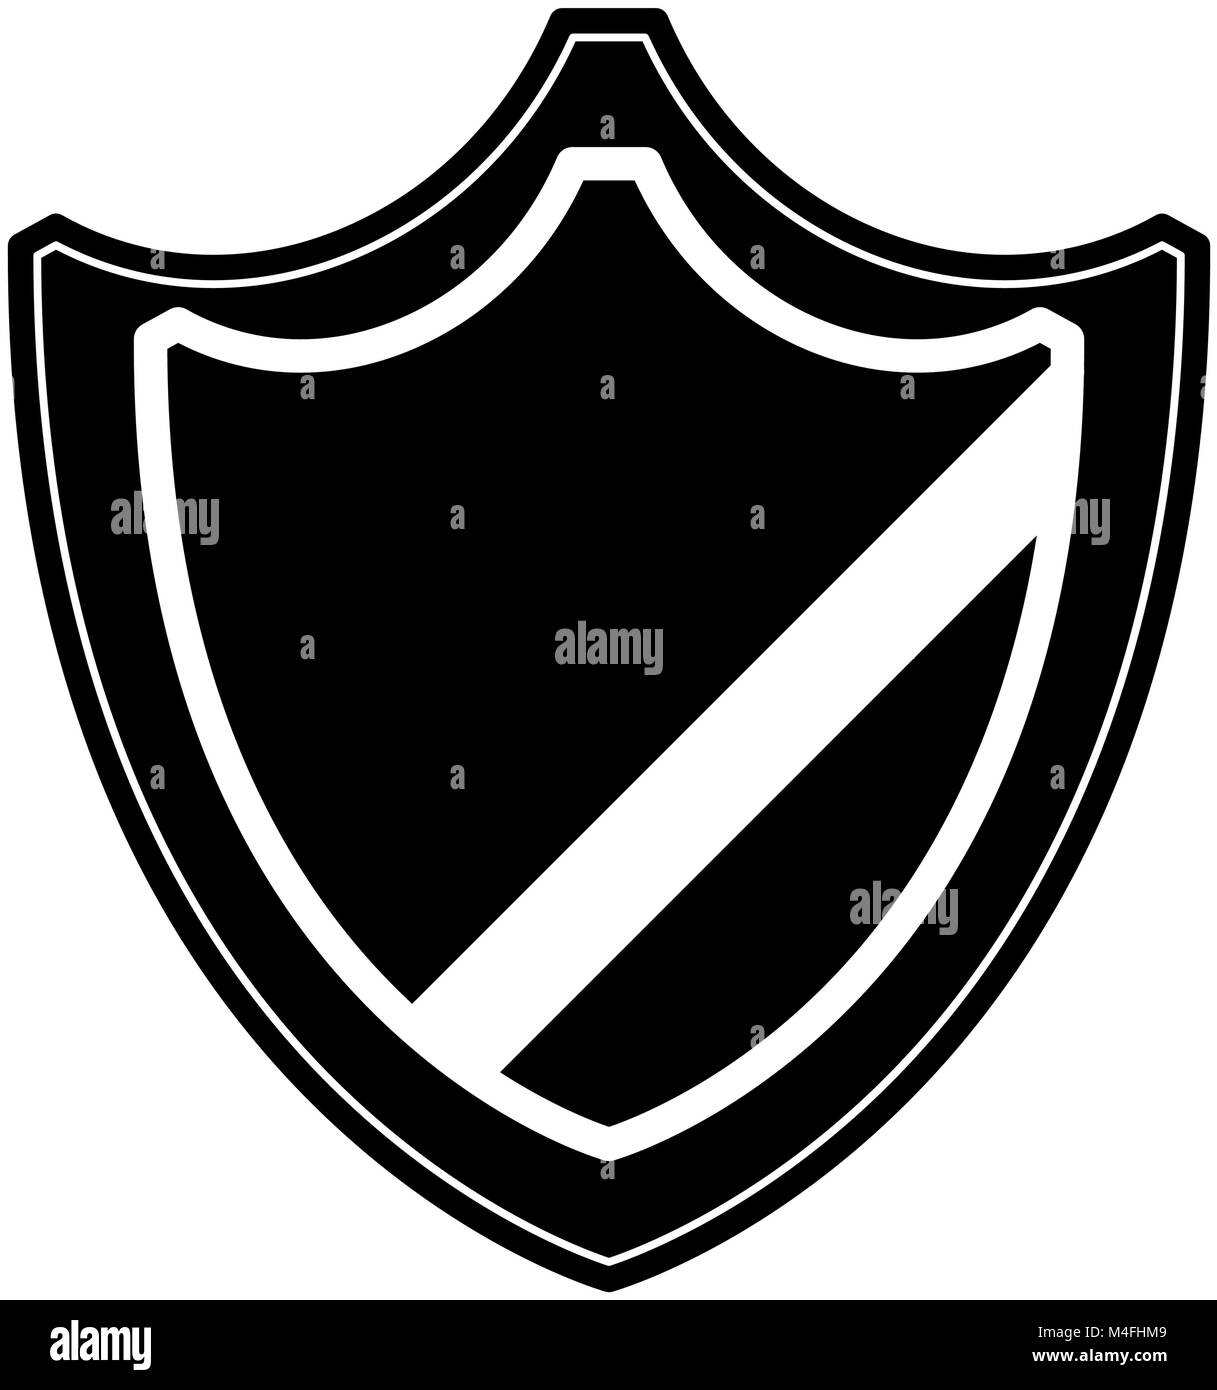 Shield safety icon - Stock Image